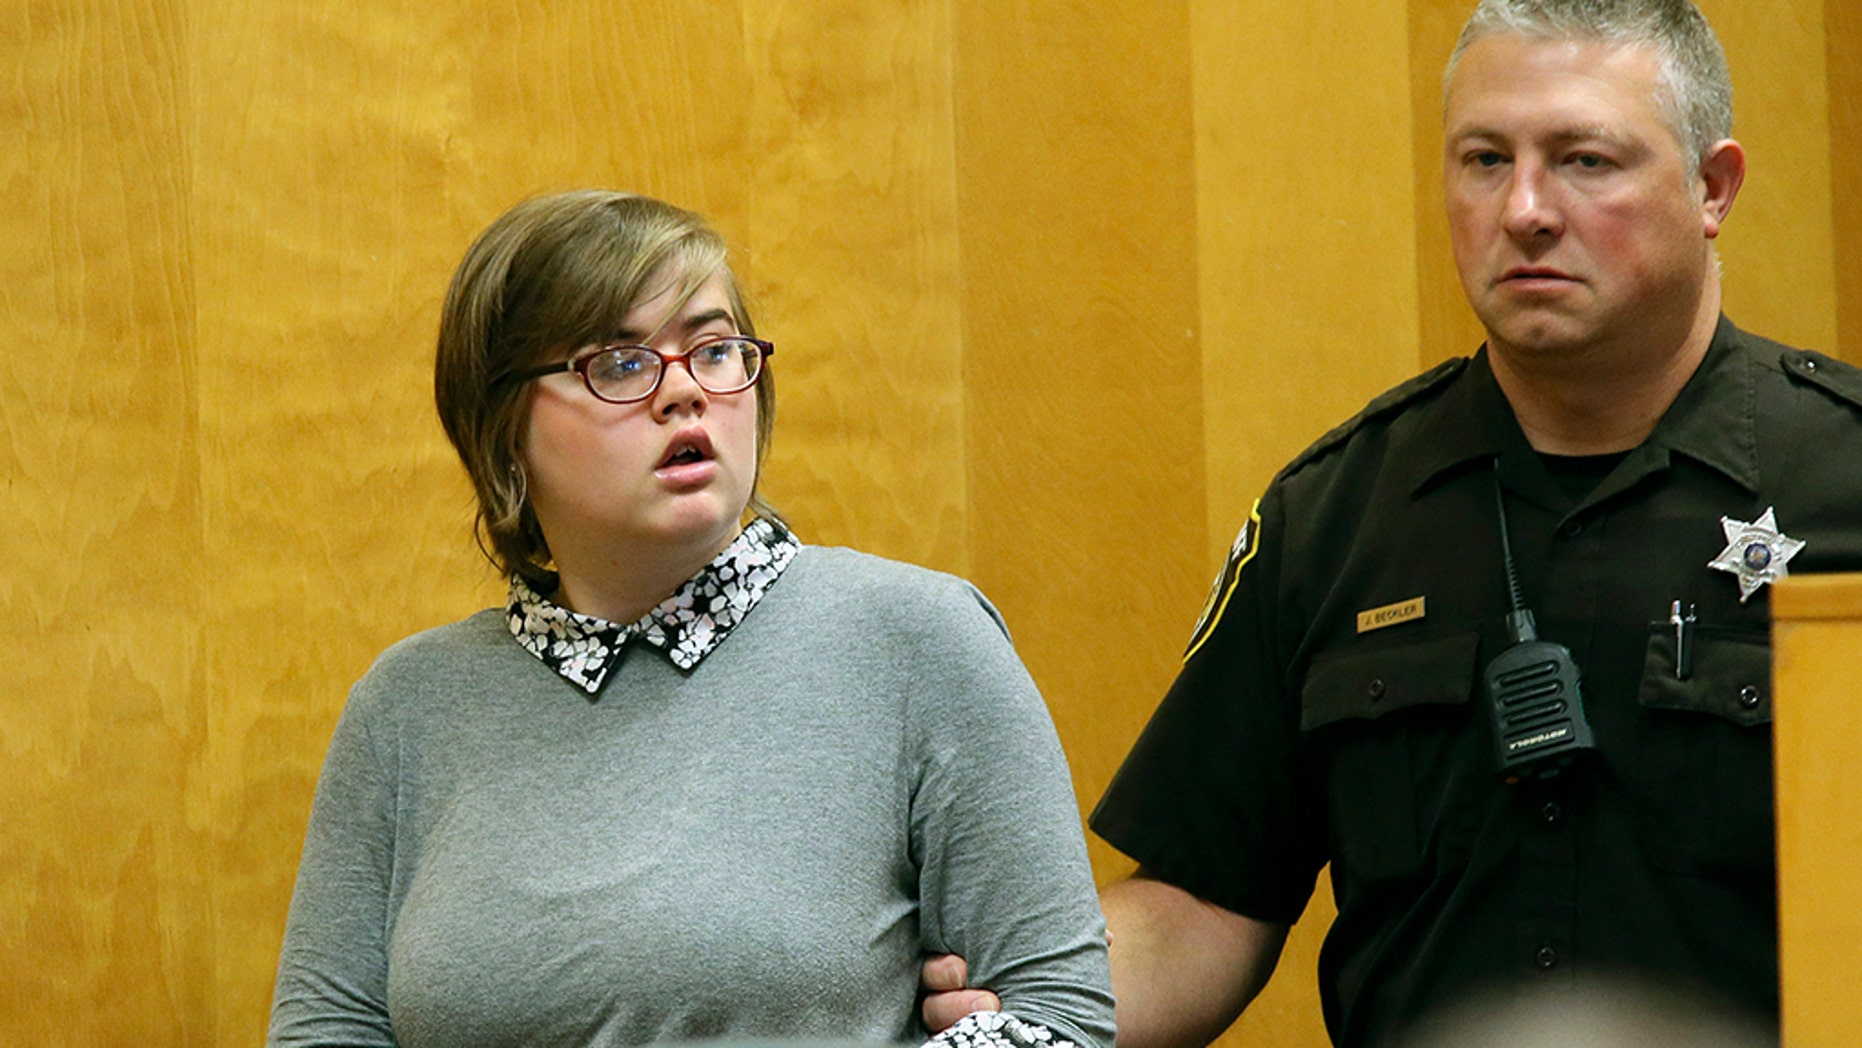 Morgan Geyser, one of two Wisconsin girls who repeatedly stabbed a classmate to death, shouldn't have been tried in adult court because she believed a fictional horror character named Slender Man would attack her family if she didn't kill the girl, according to an appeal filed by her attorney. (Michael Sears/Milwaukee Journal-Sentinel via AP, Pool, File)